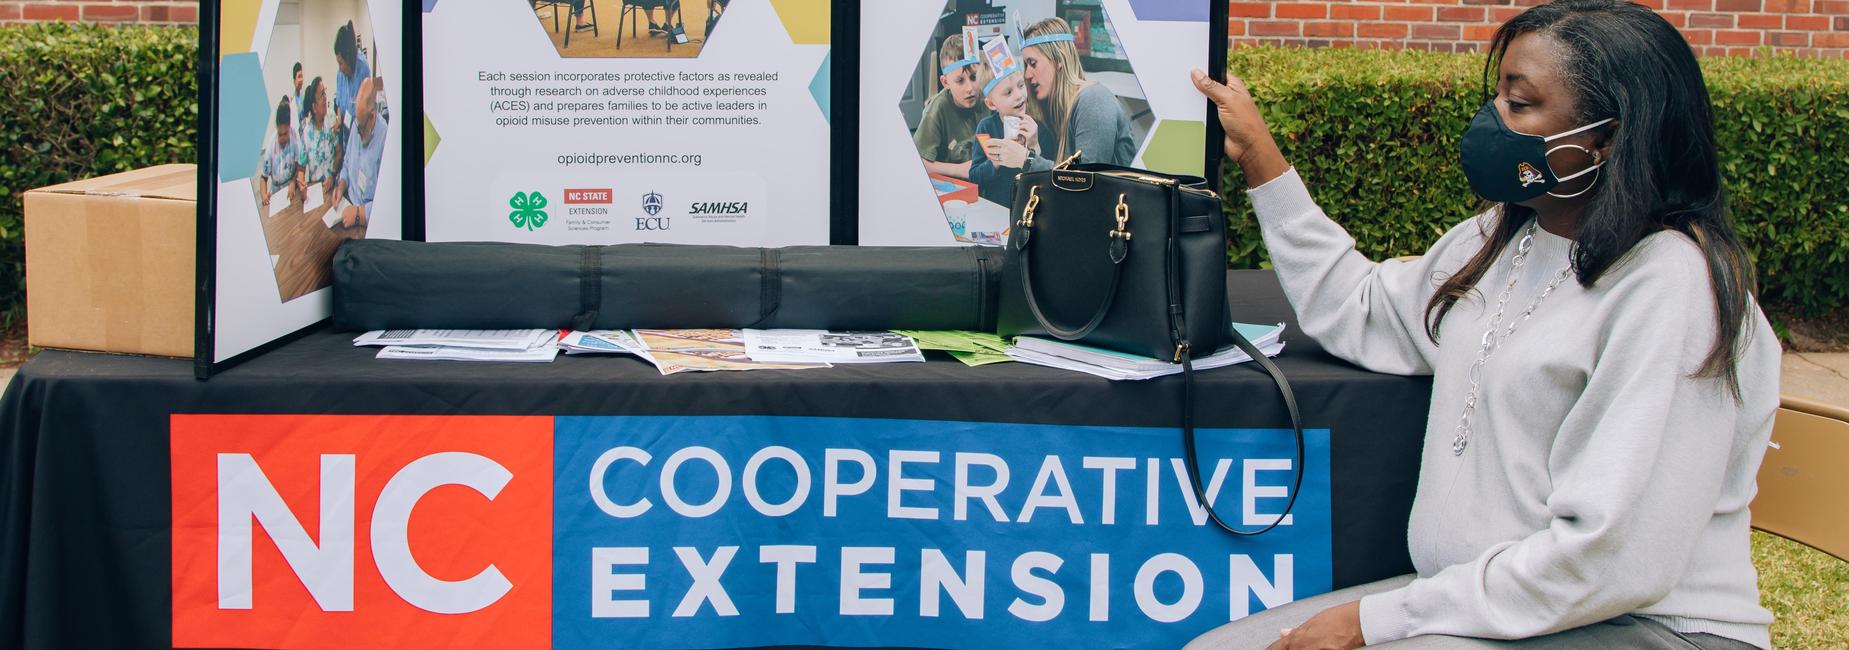 NC Cooperative Extention